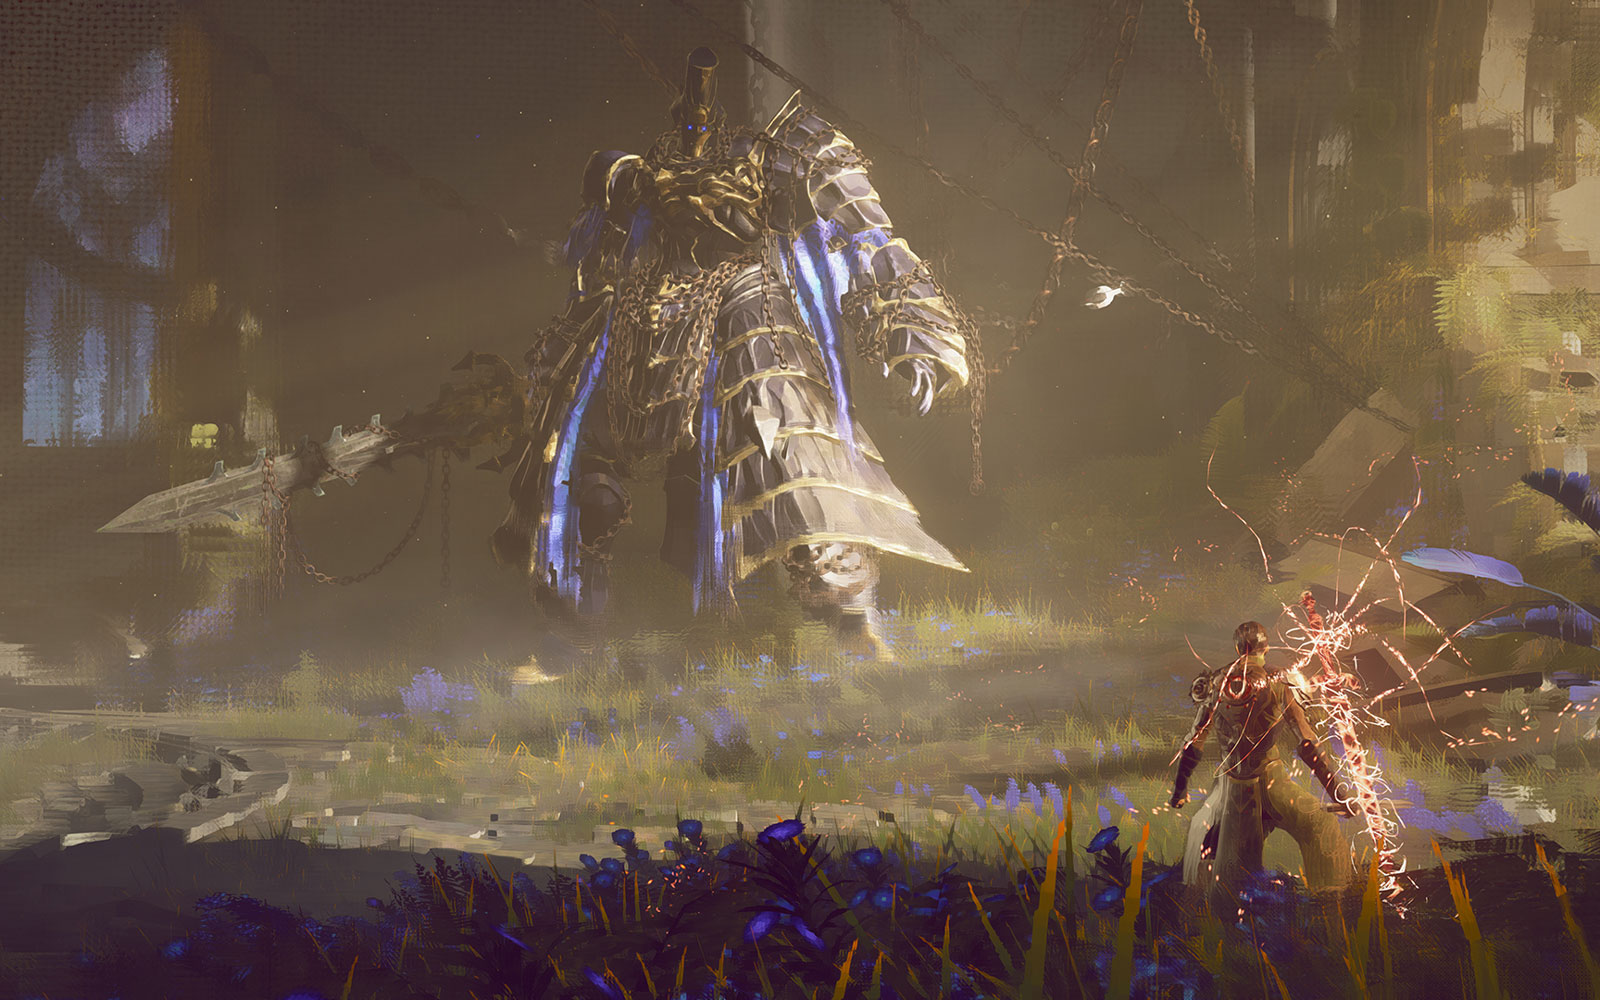 Square Enix will show off 'Babylon's Fall' from PlatinumGames during E3 | Engadget